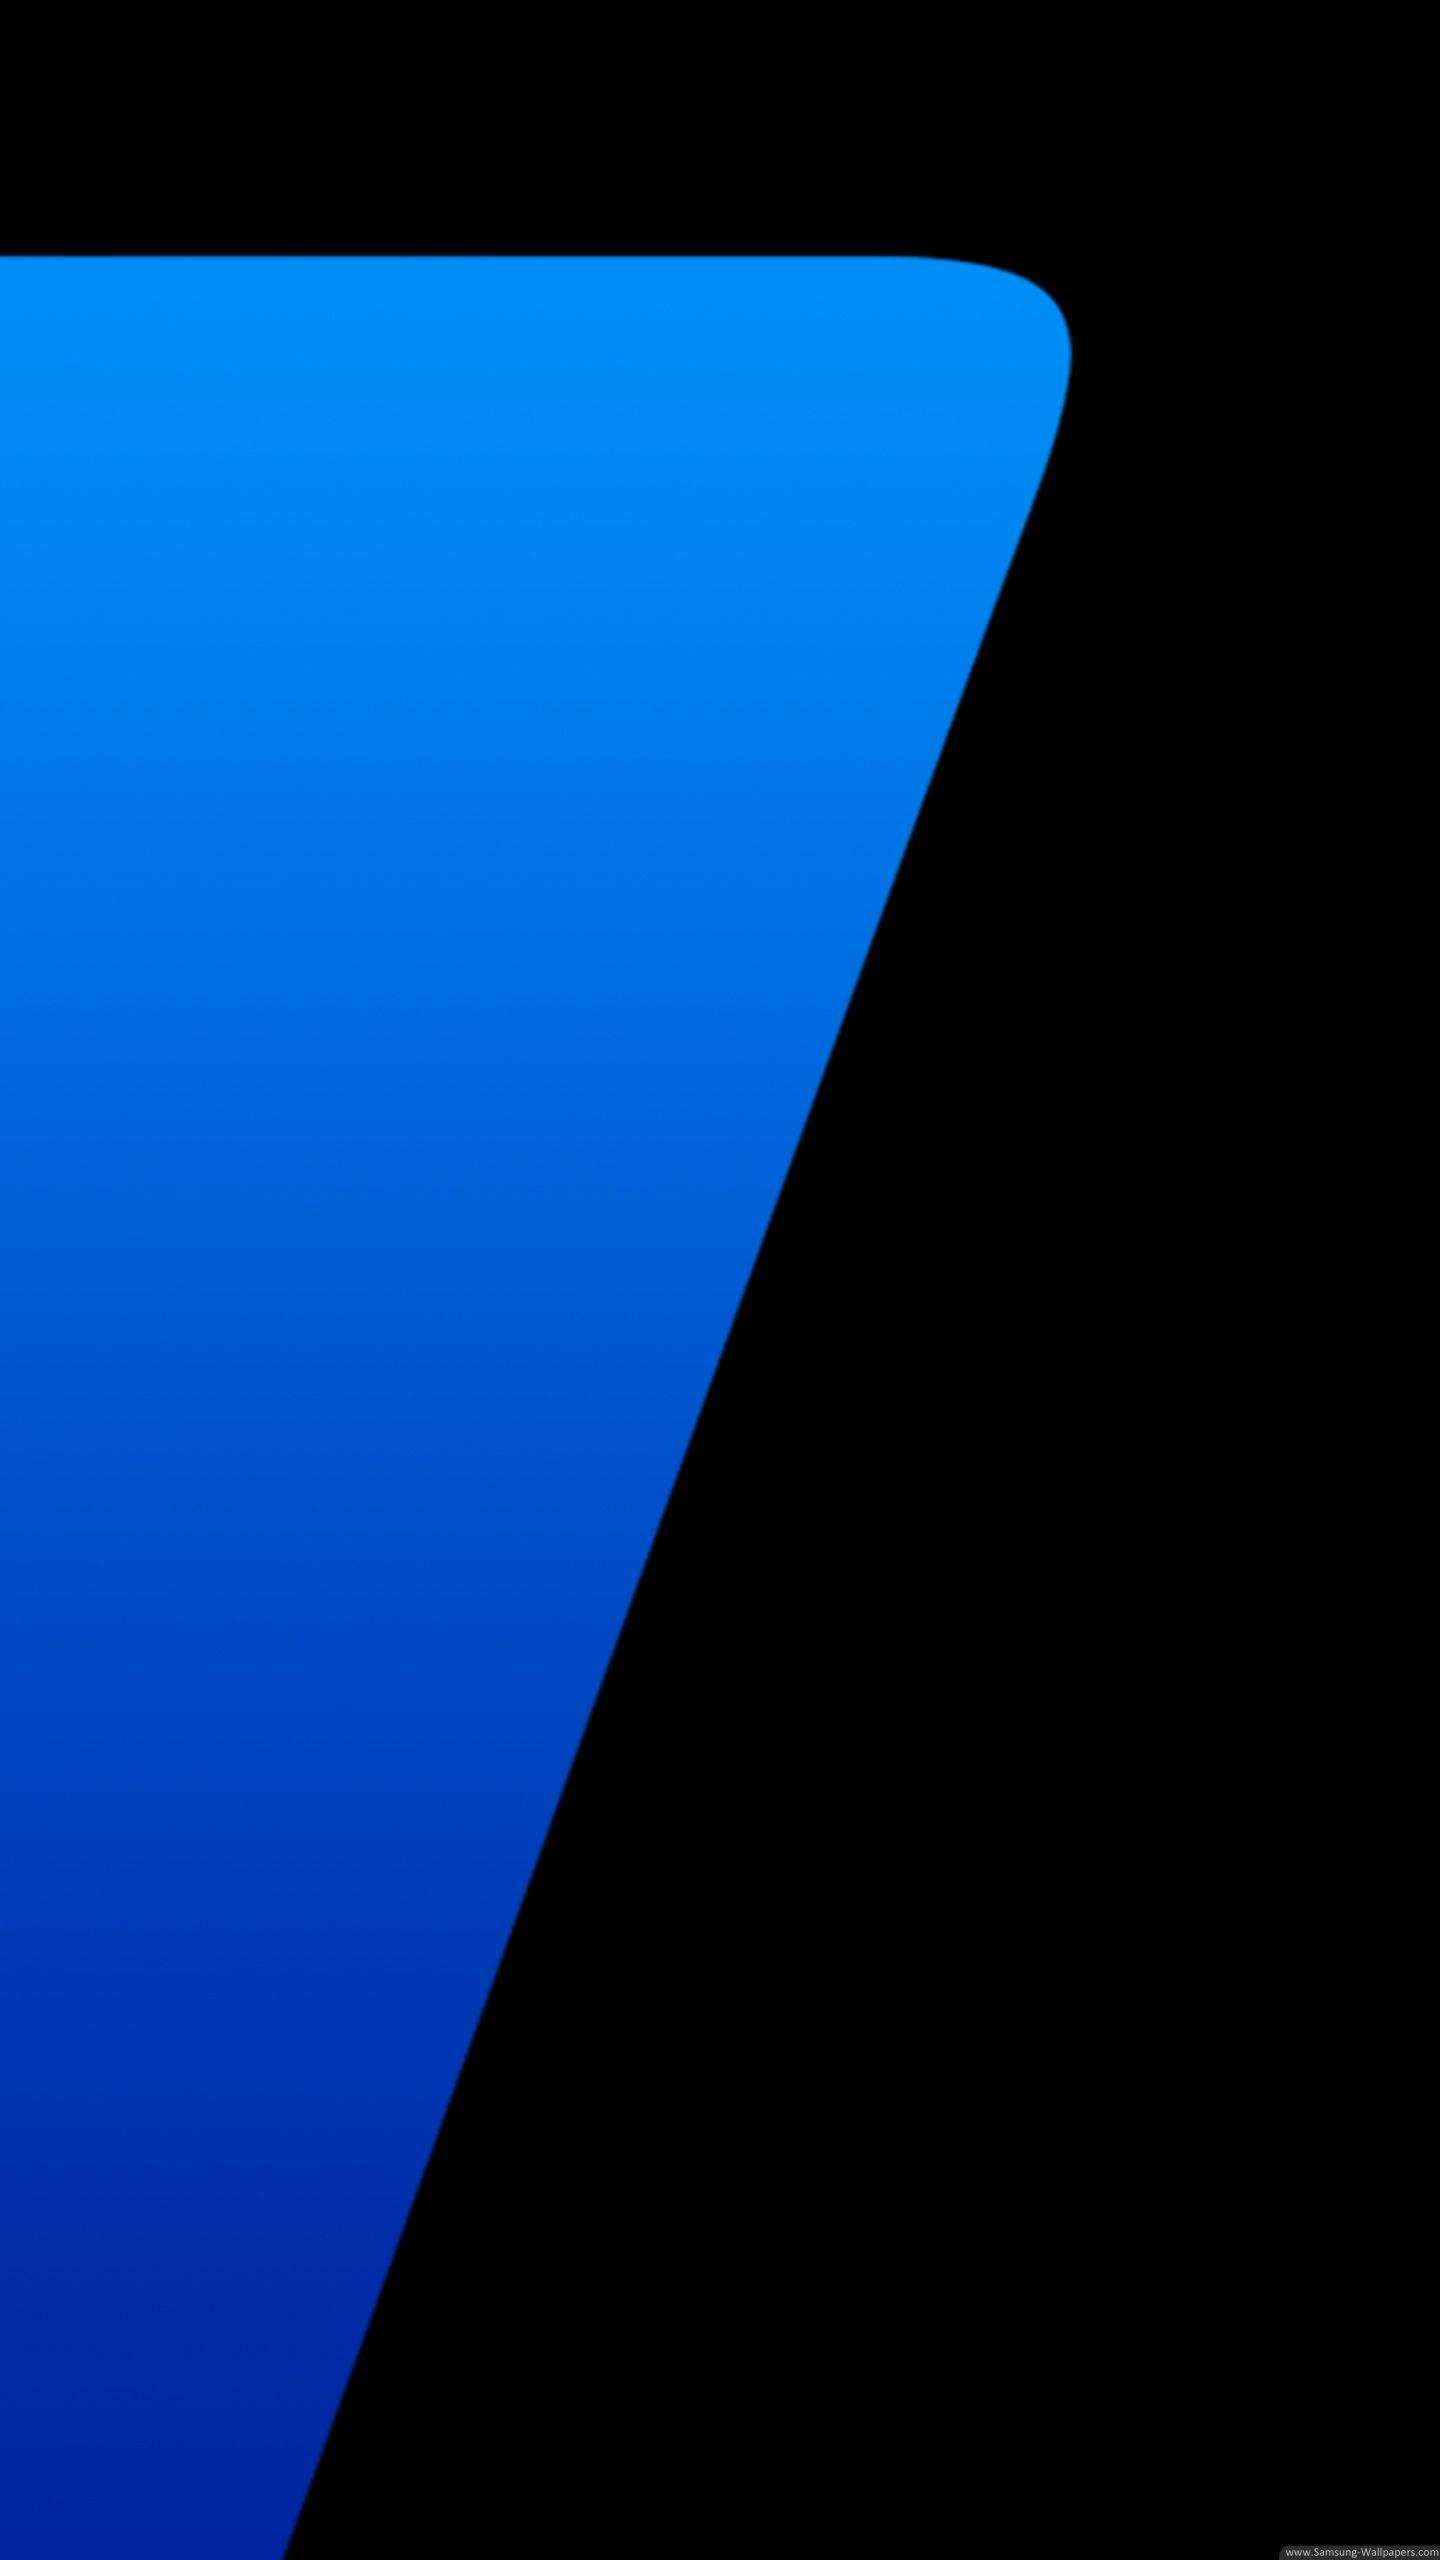 Samsung S7 Wallpapers Top Free Samsung S7 Backgrounds